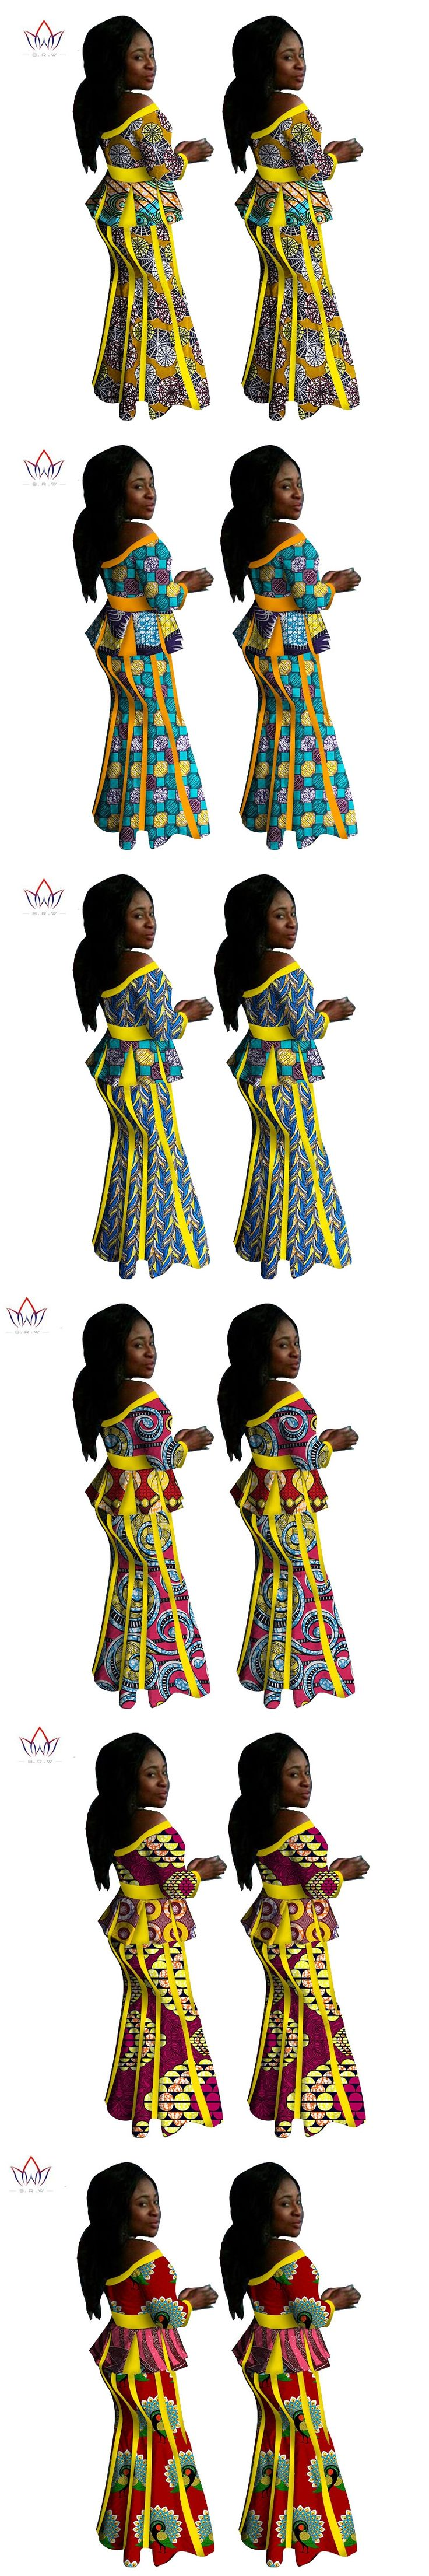 2017 African Elegant Skirt Sets For Women Spring Traditional African 2 Piece Set Plus Size Top skirts African Clothing WY1412